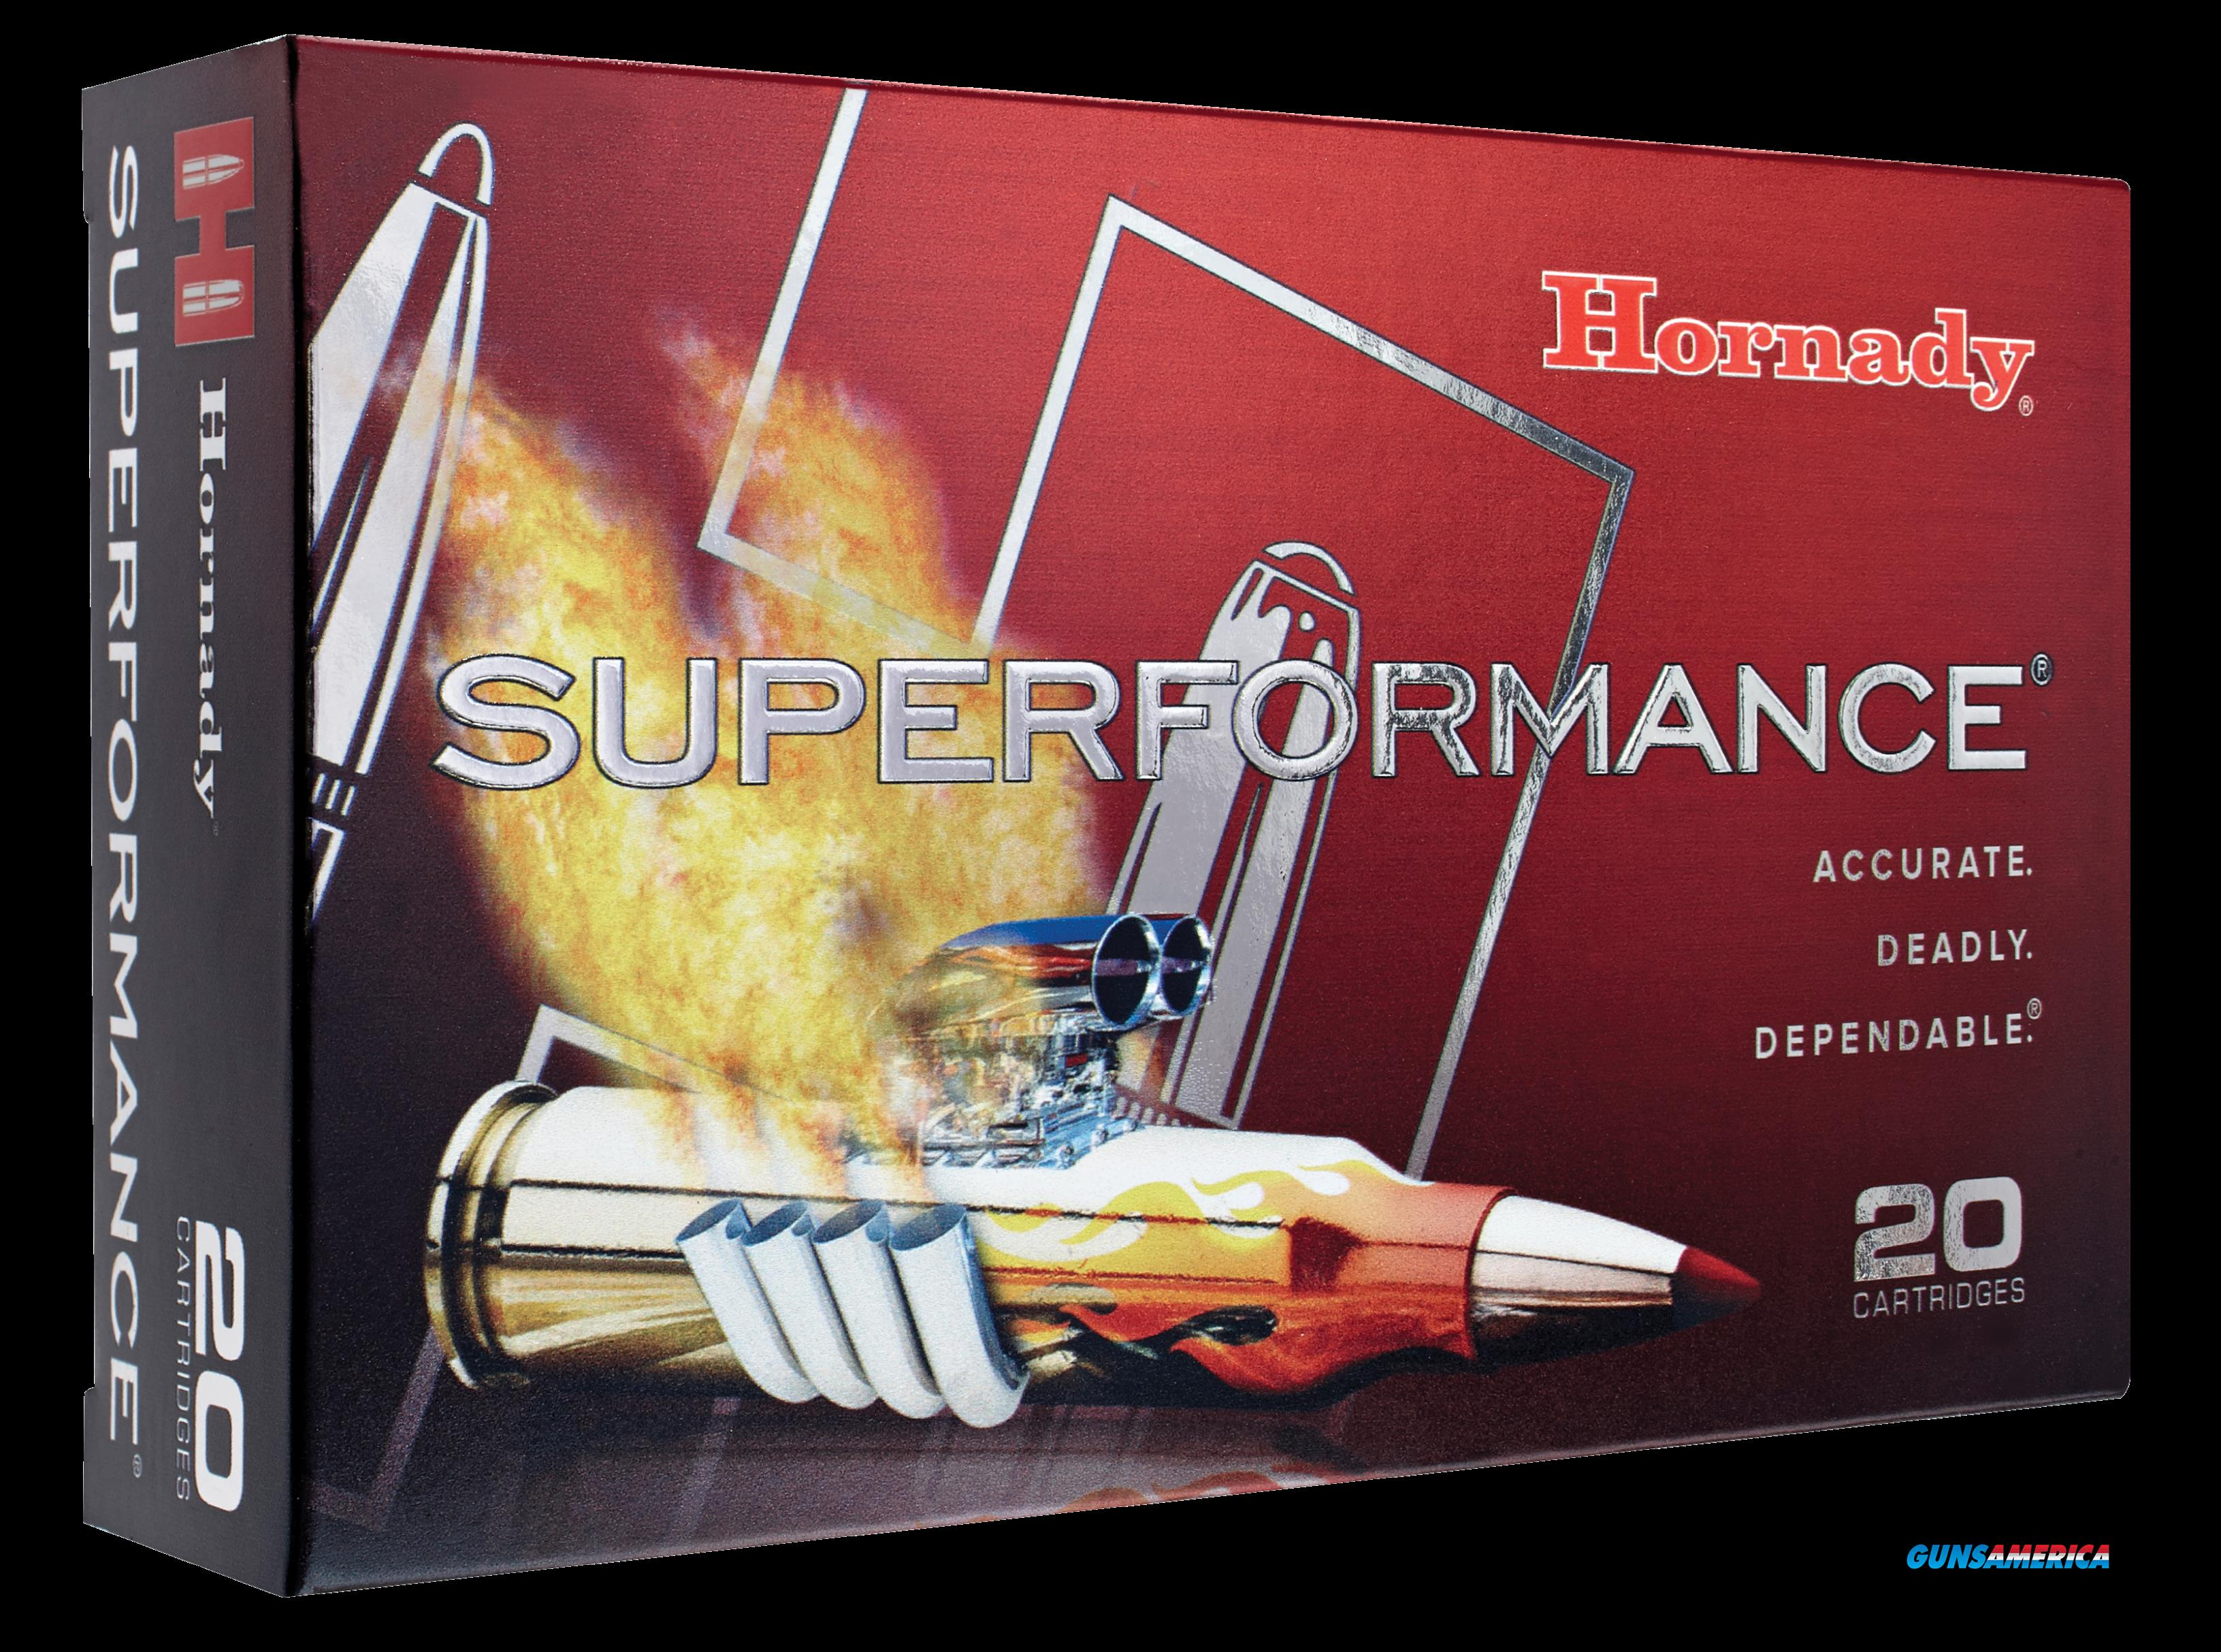 Hornady Superformance, Horn 80576 7mm-08  139 Gmx Sf    20-10  Guns > Pistols > 1911 Pistol Copies (non-Colt)